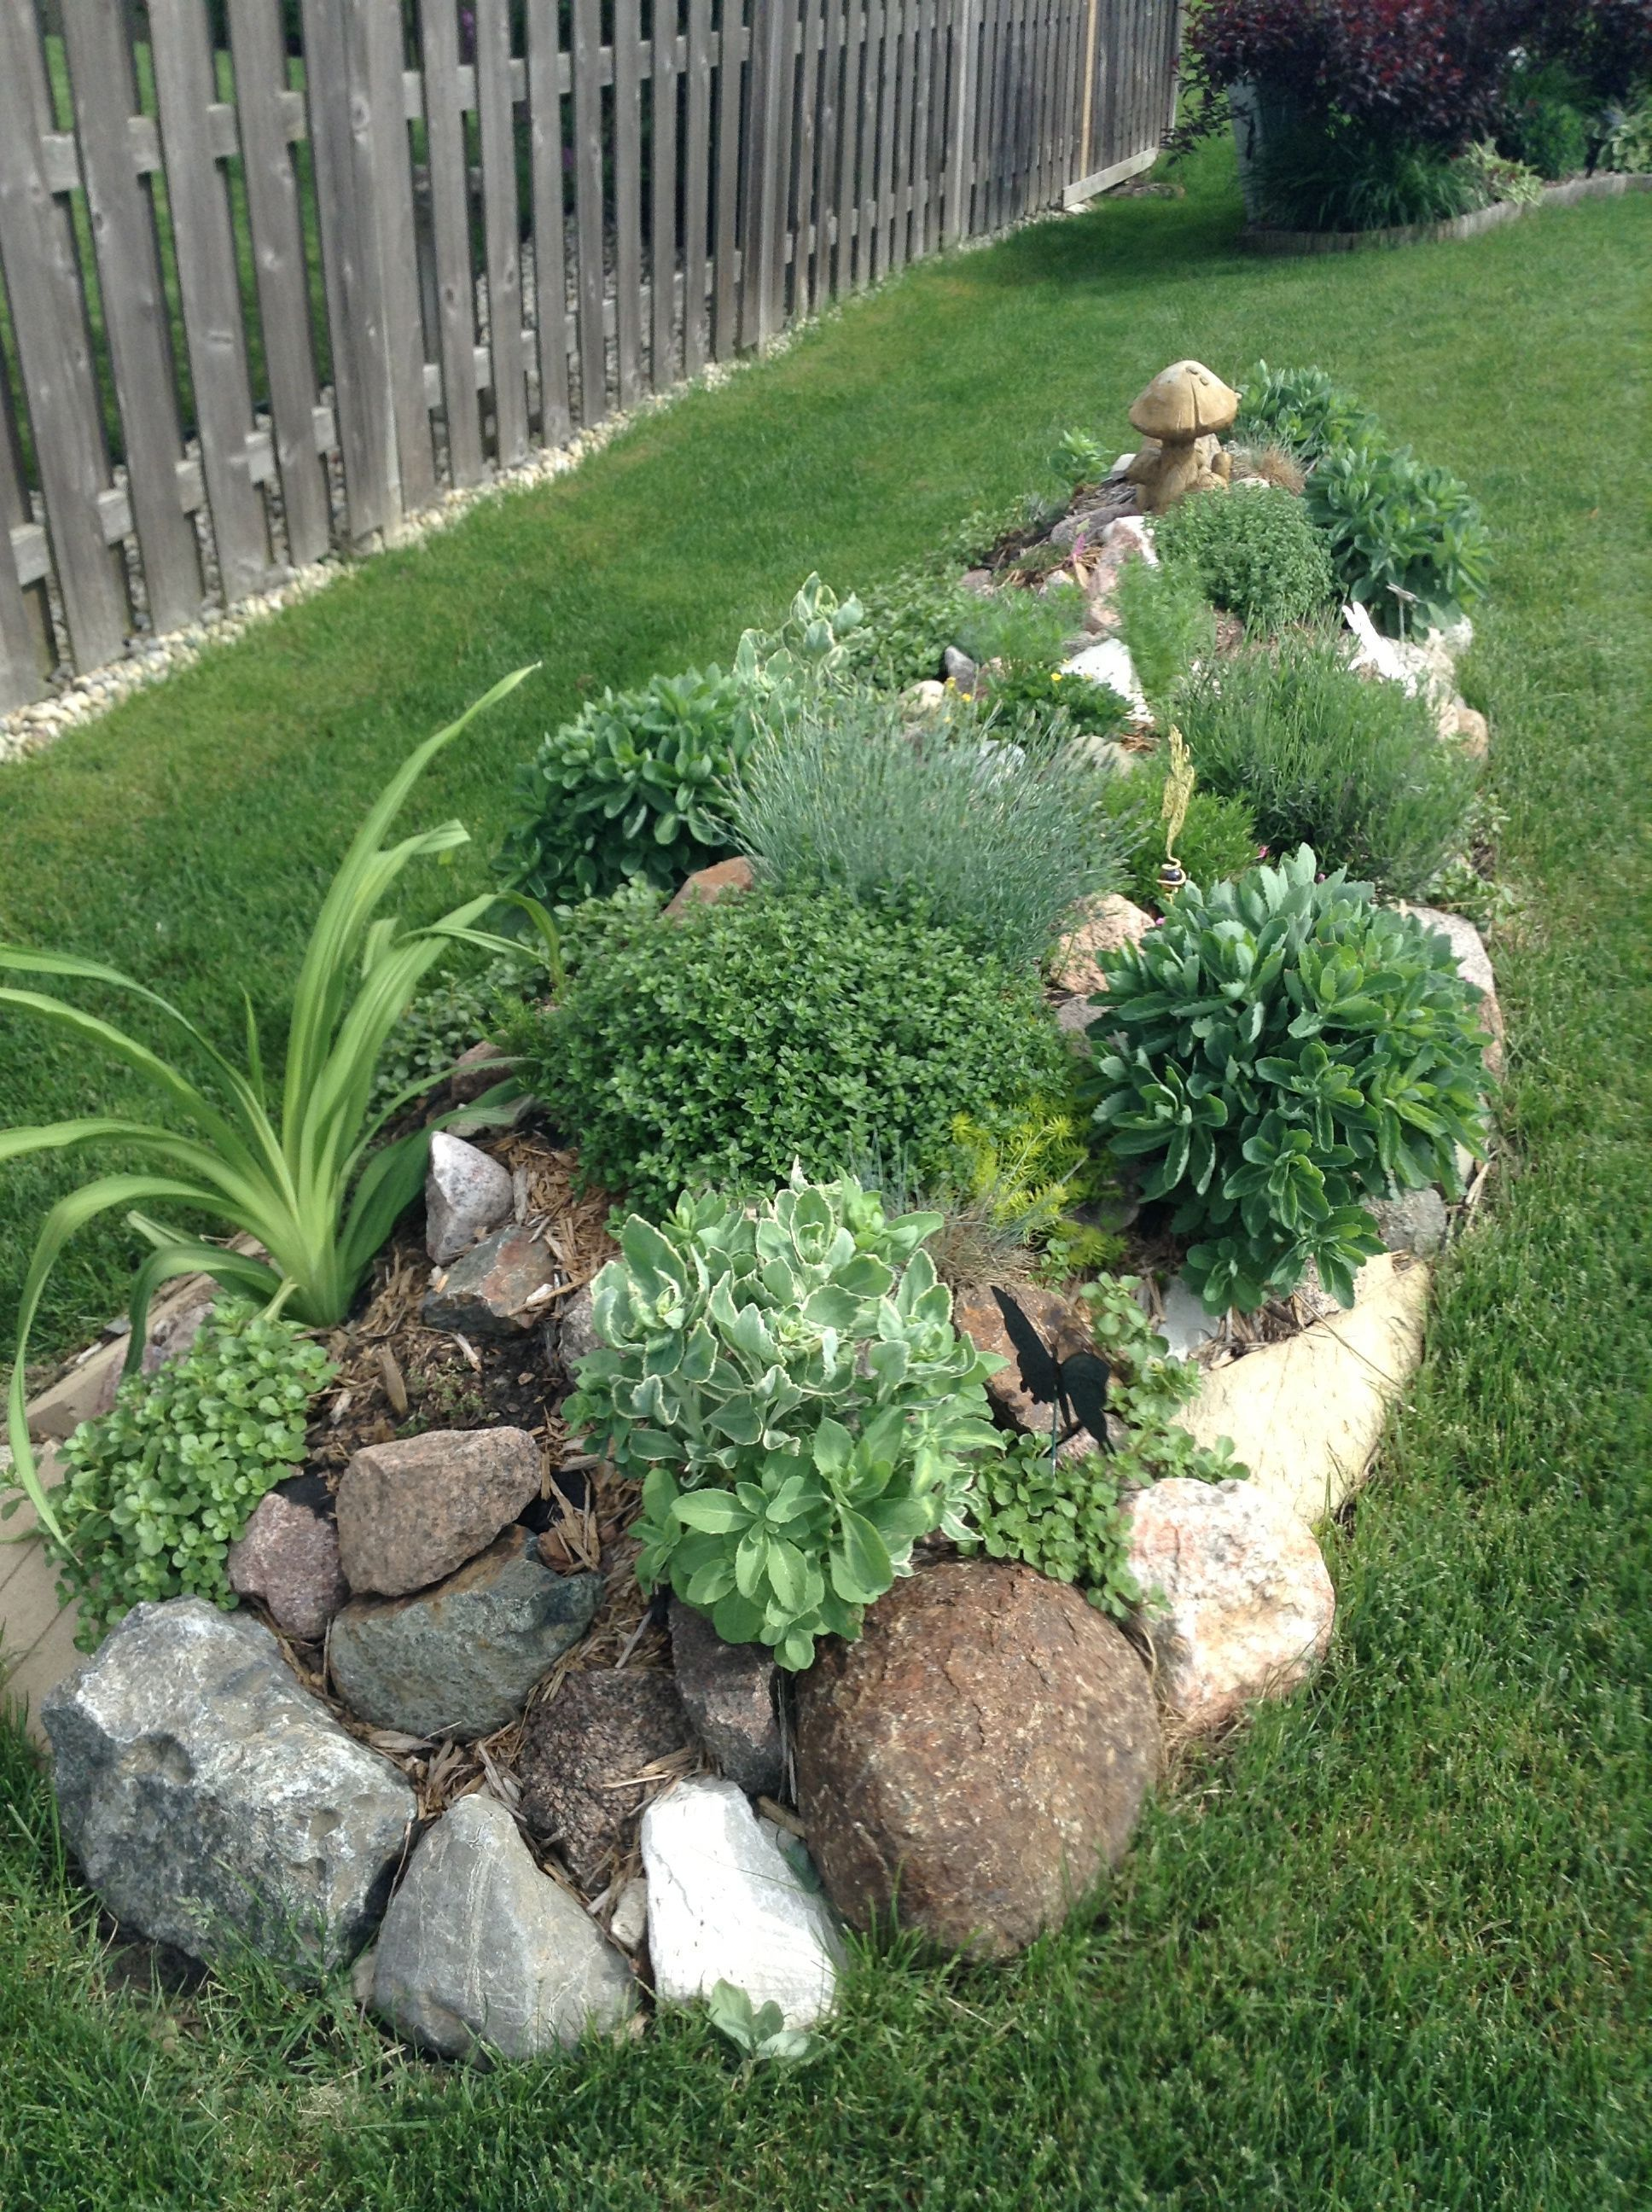 17 easy and cheap curb appeal ideas anyone can do on a budget 17 easy and cheap curb appeal ideas anyone can do on a budget izmirmasajfo